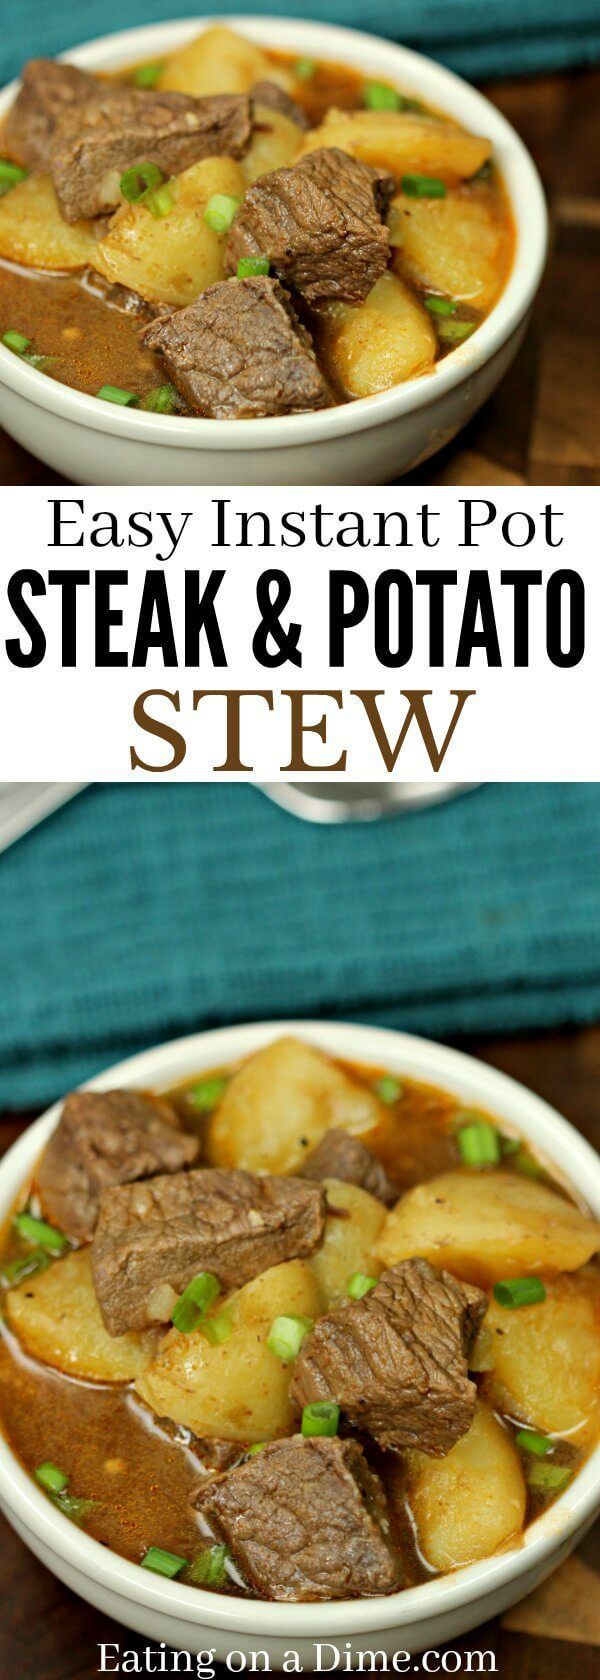 Steak and Potatoes Beef Stew Instant Pot Pressure Cooker #instantpotrecipeseasy